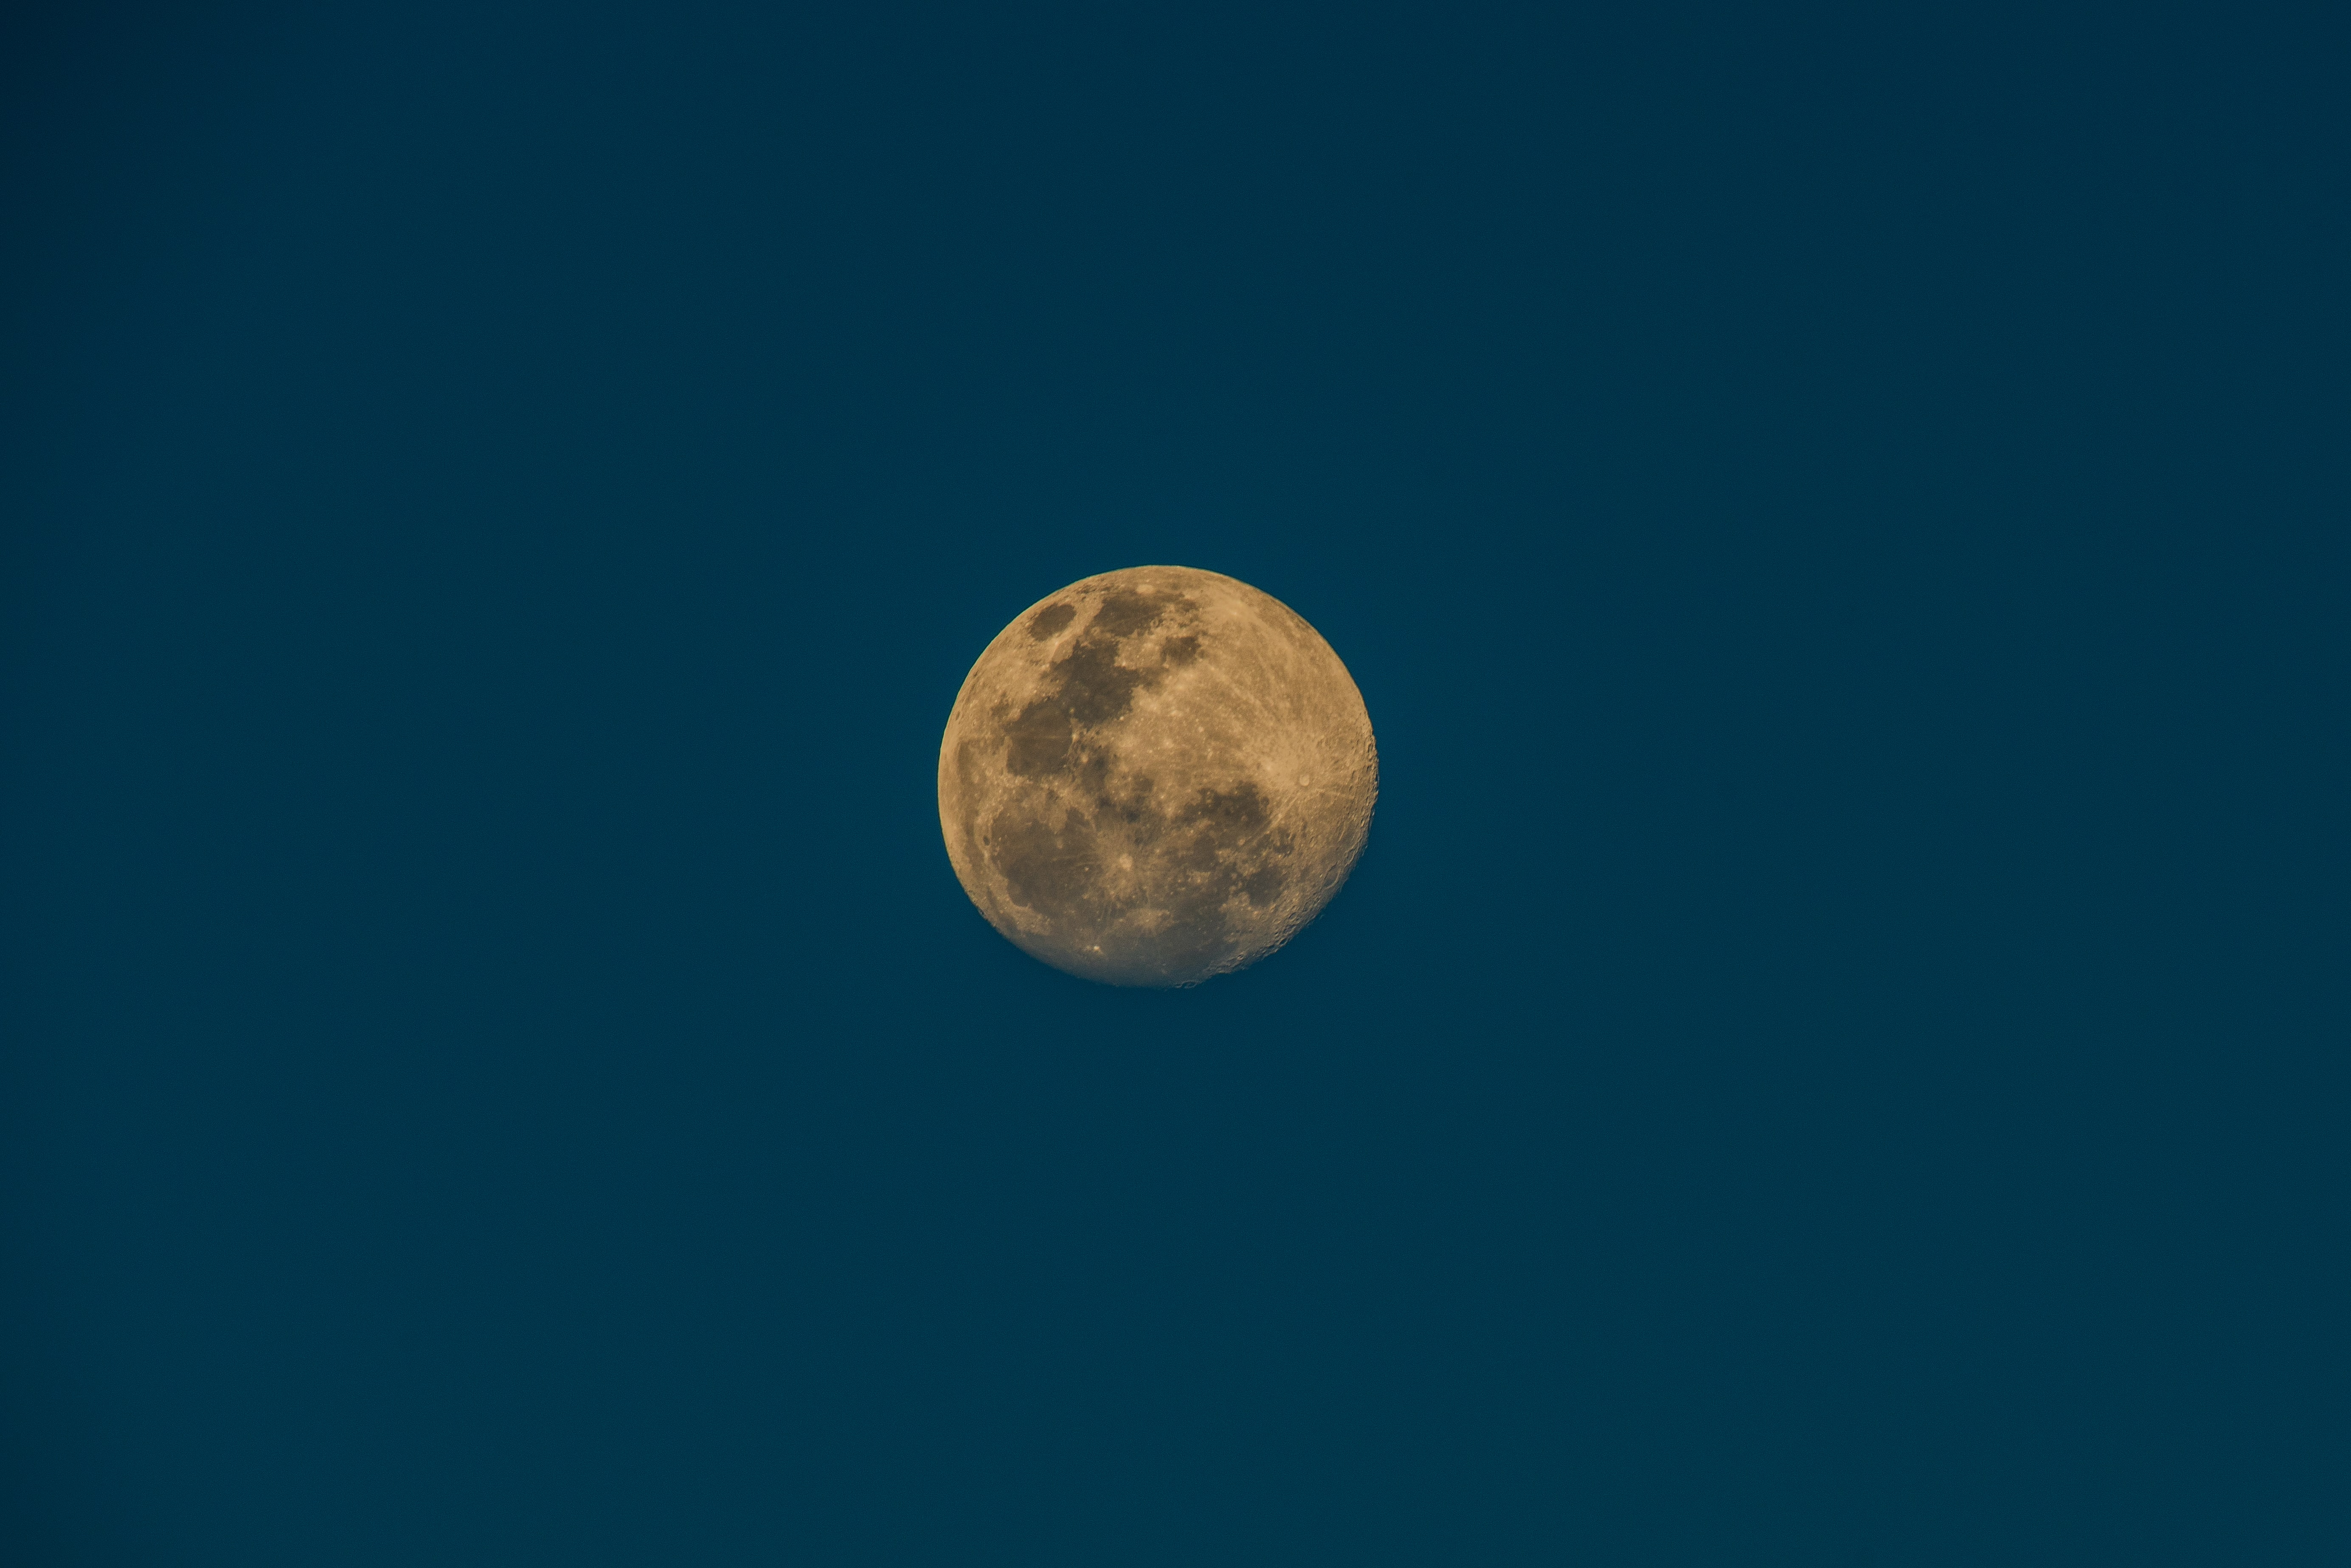 The super moon on the night sky over Footscray